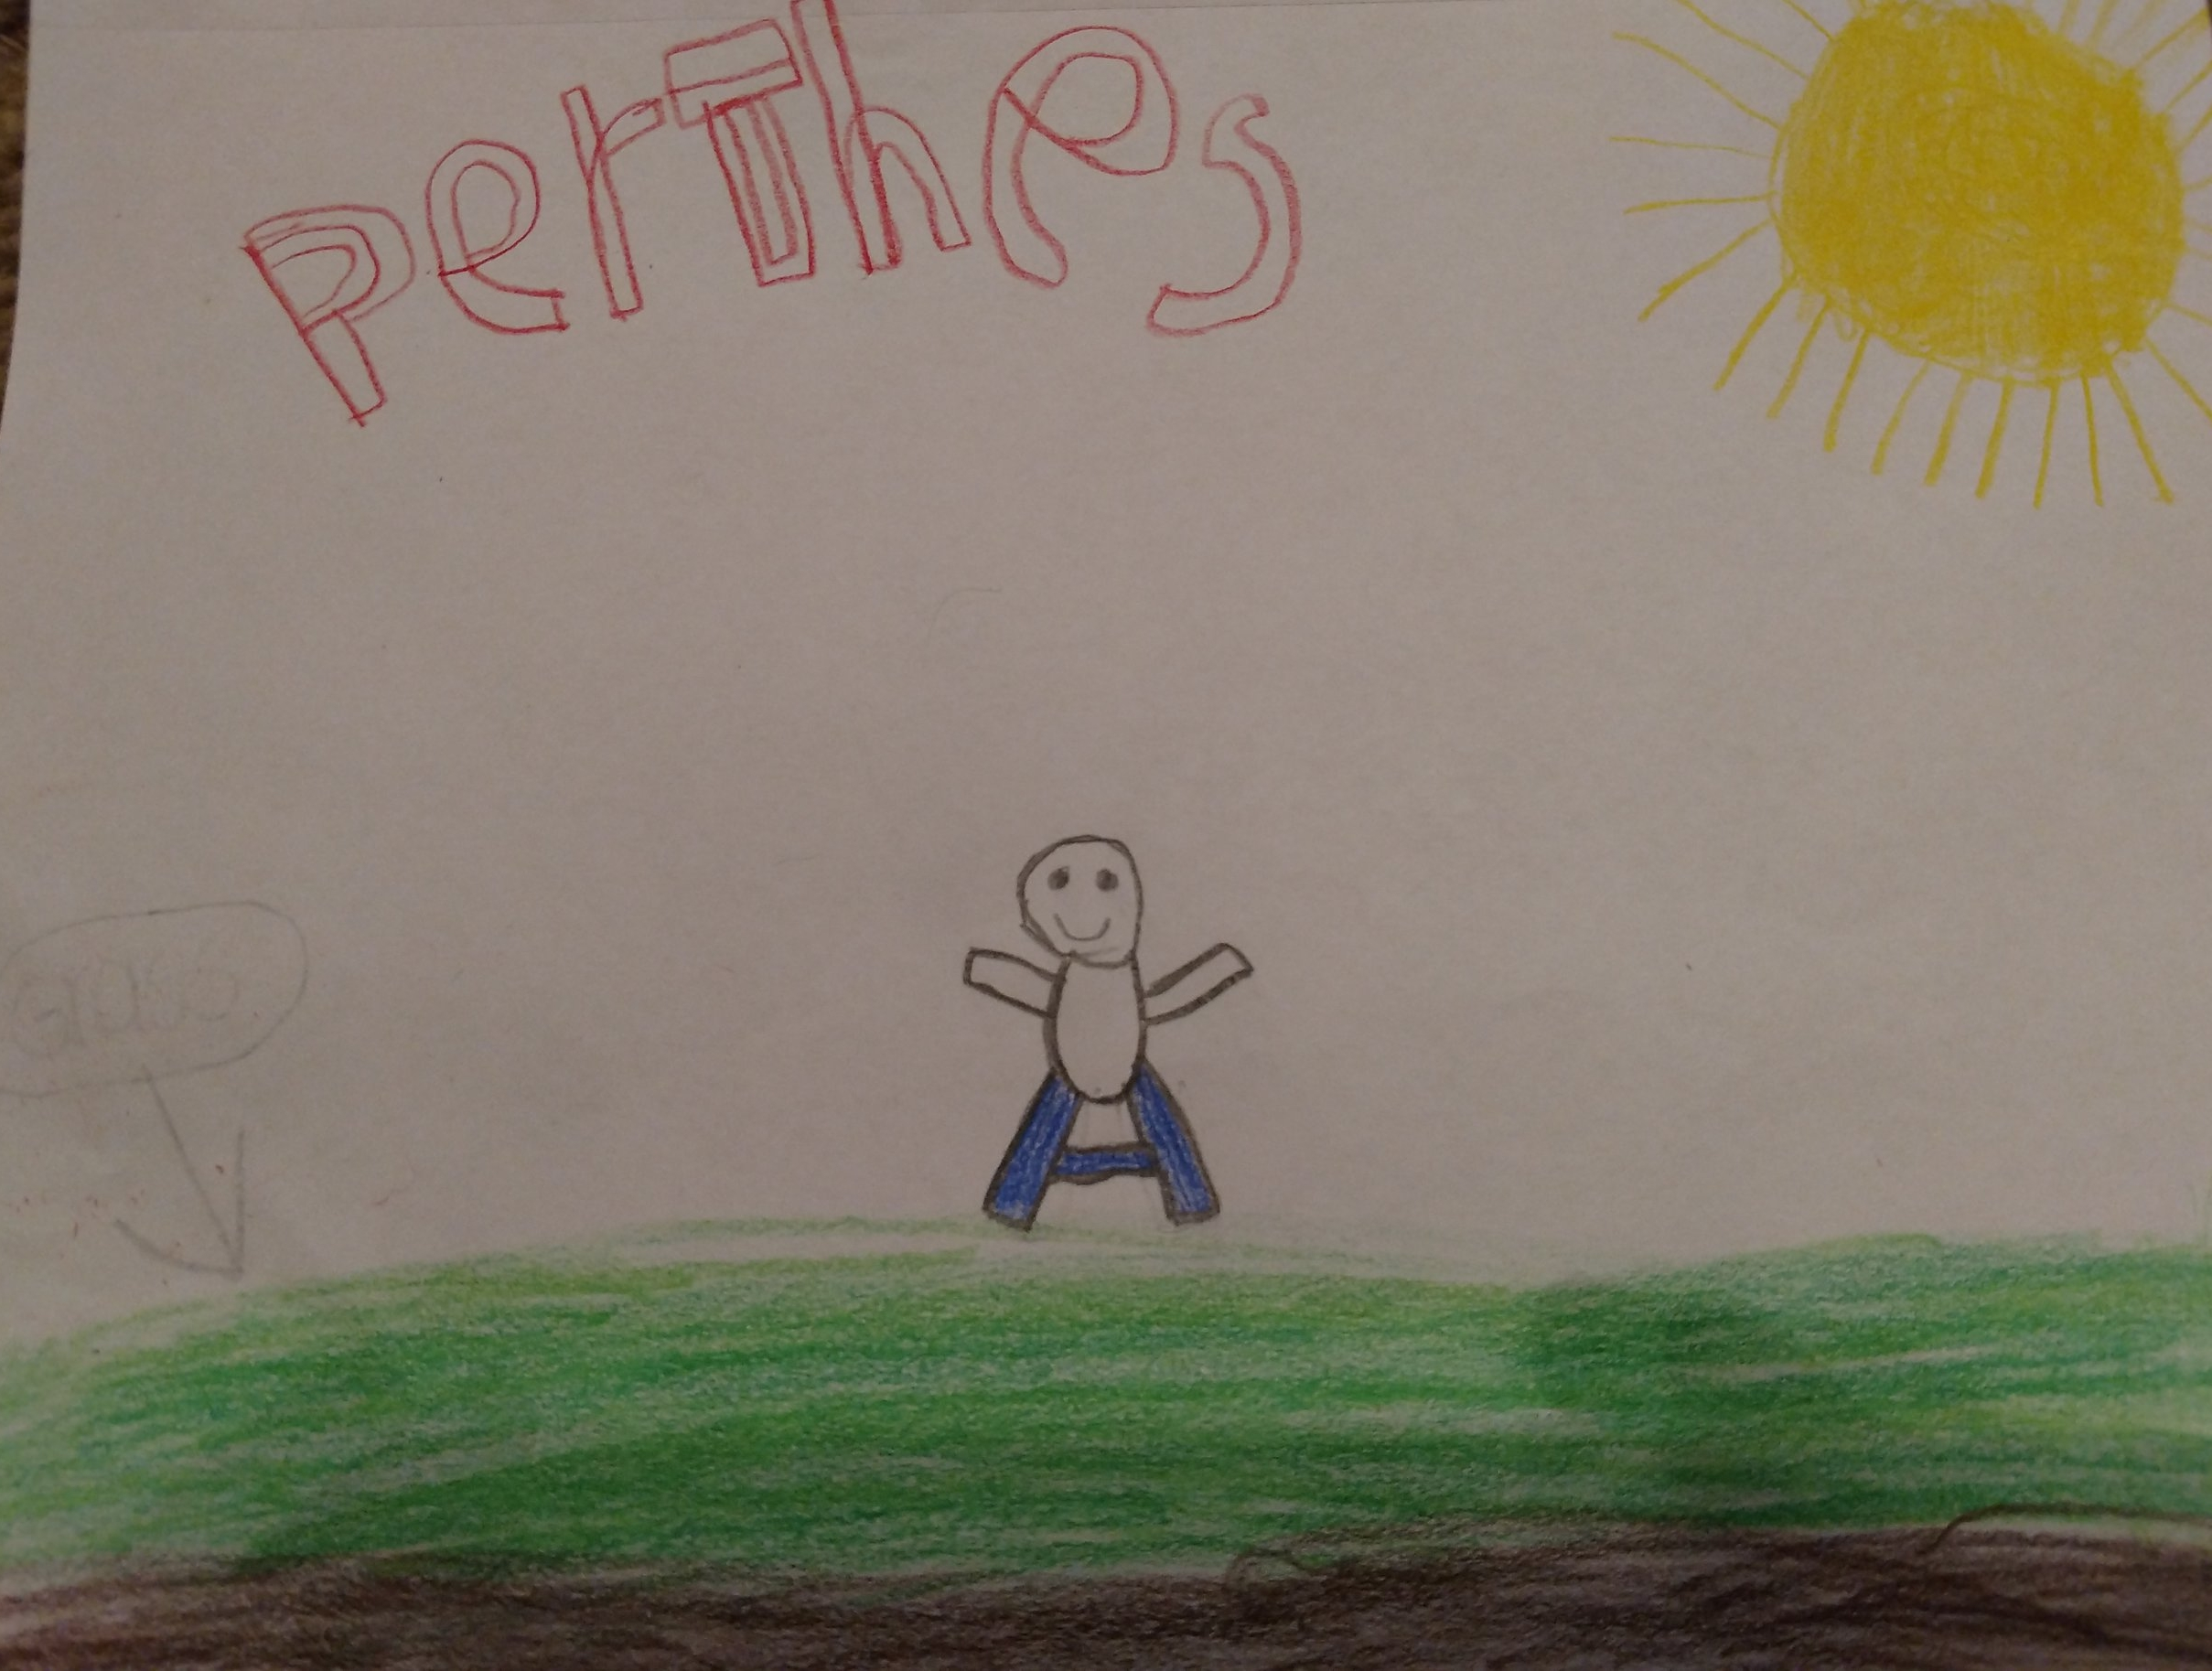 008 - PERTHES by Gavin Harris (age 10) in Paris, Tennessee, USA